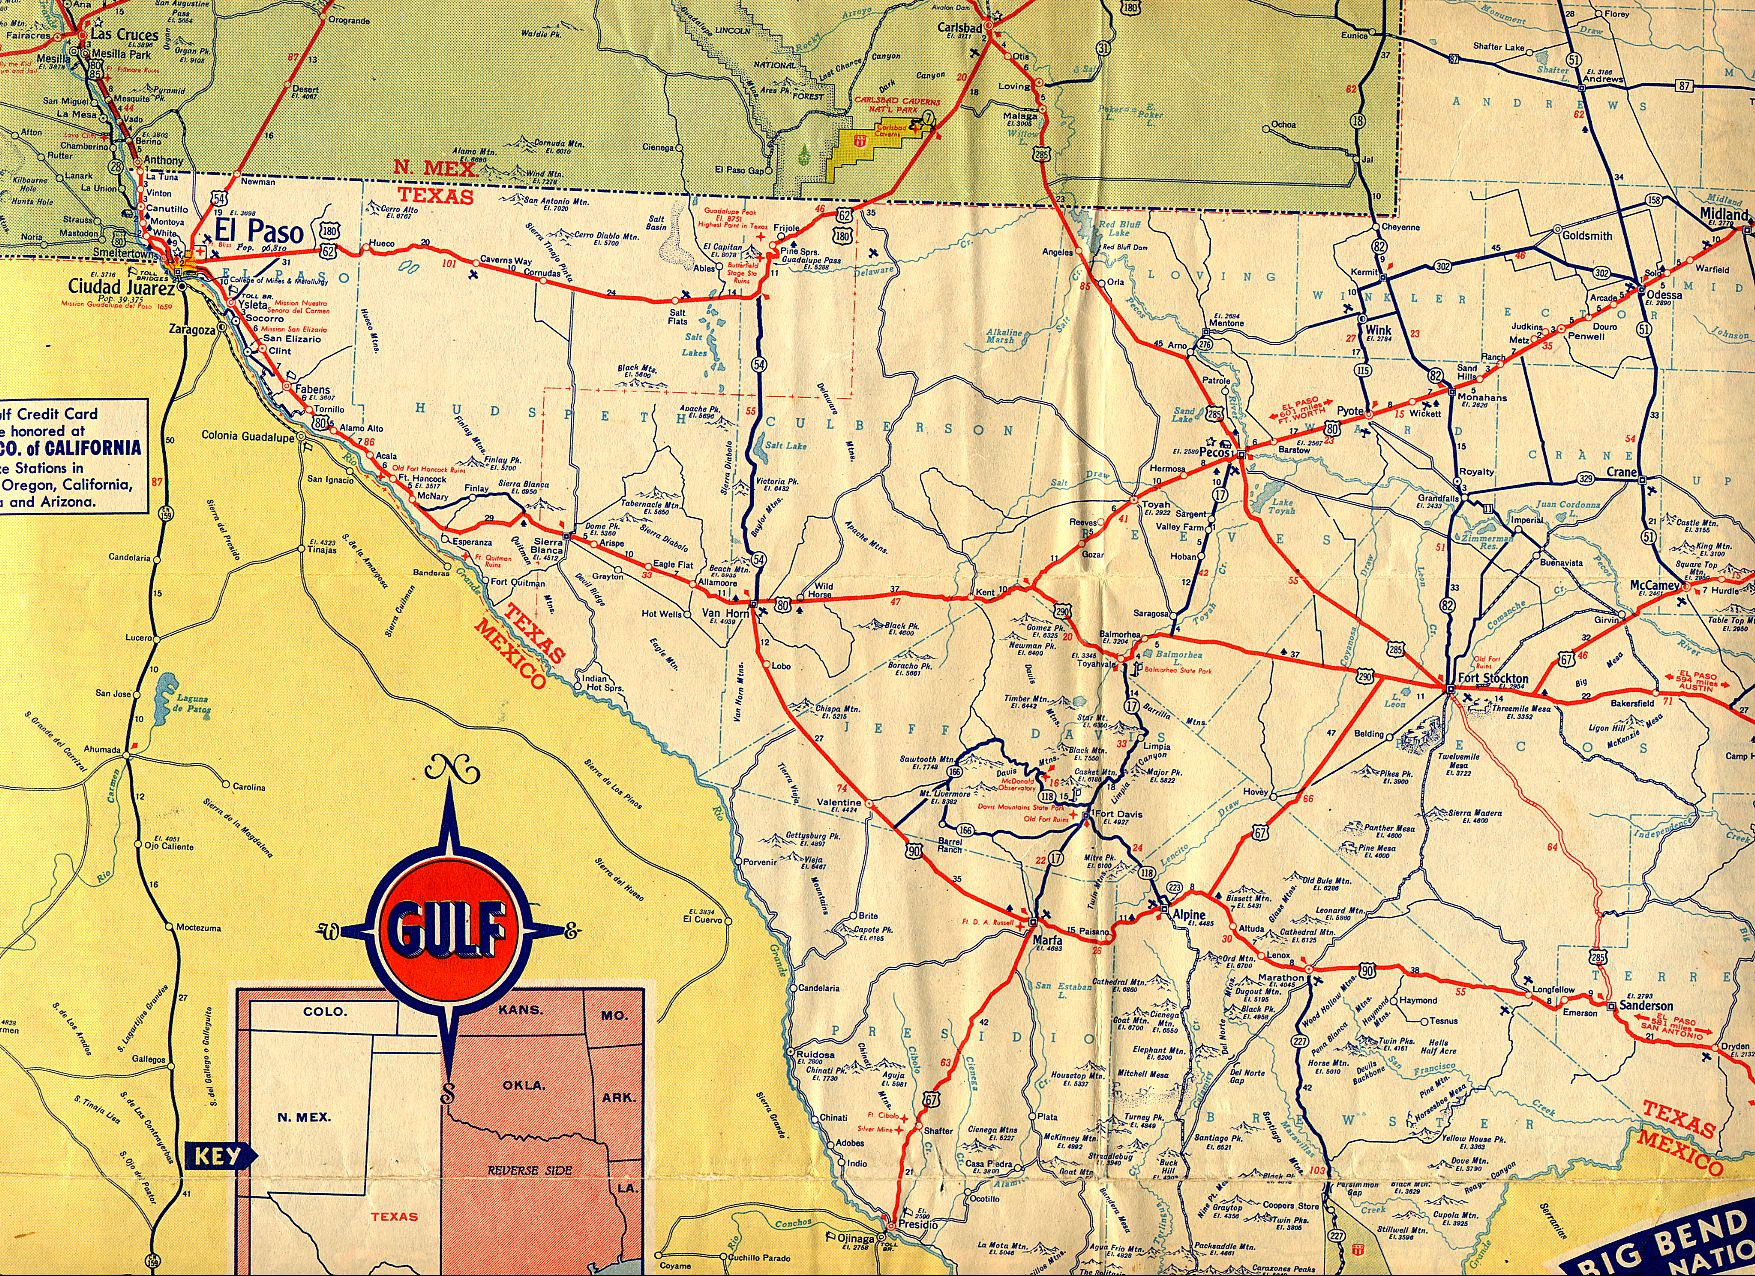 TexasFreeway > Statewide > Historic Information > Old Road Maps